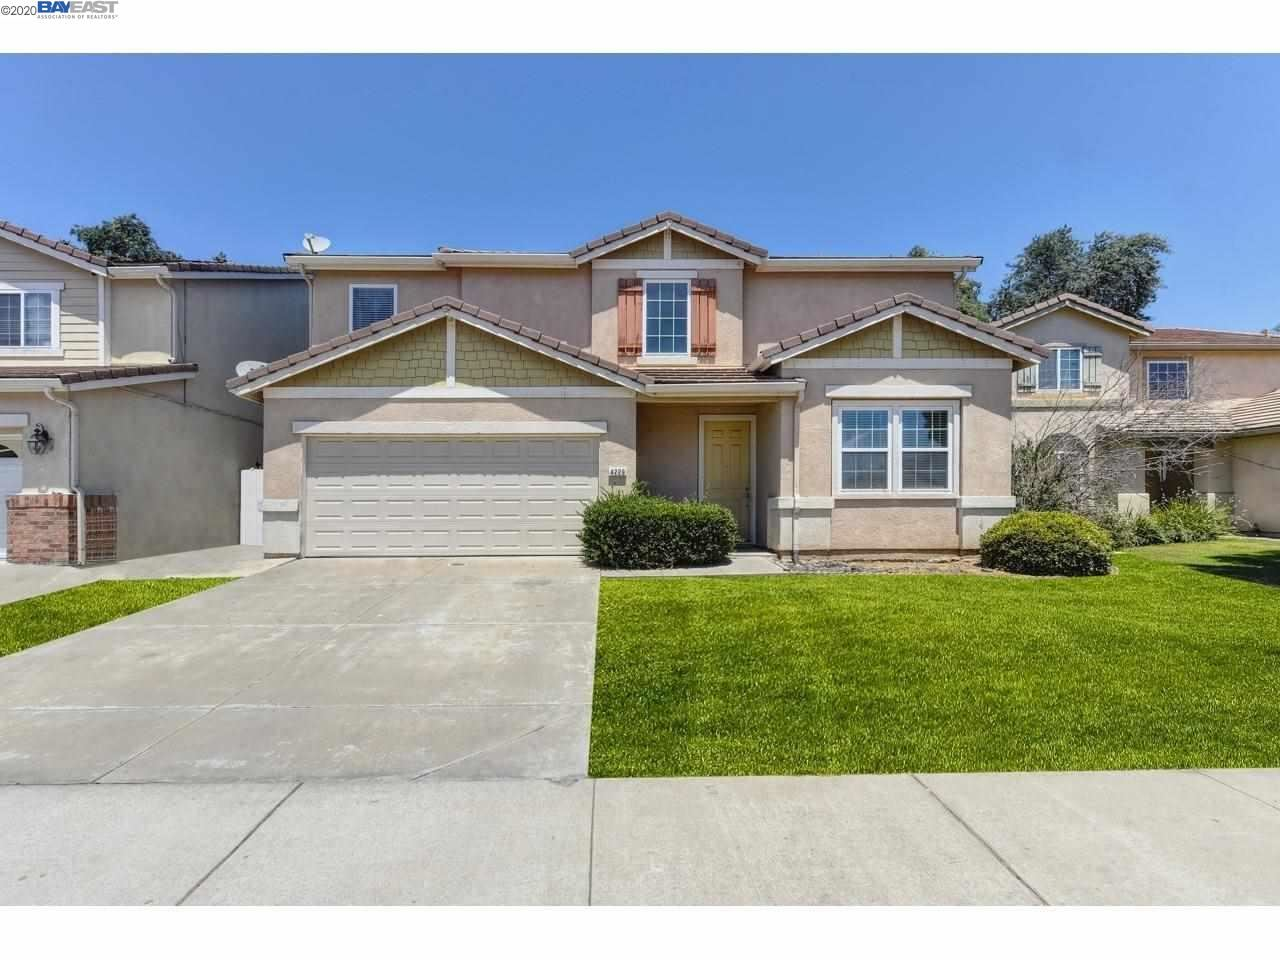 Photo for 4229 Kirsten Dr, STOCKTON, CA 95212 (MLS # 40915072)